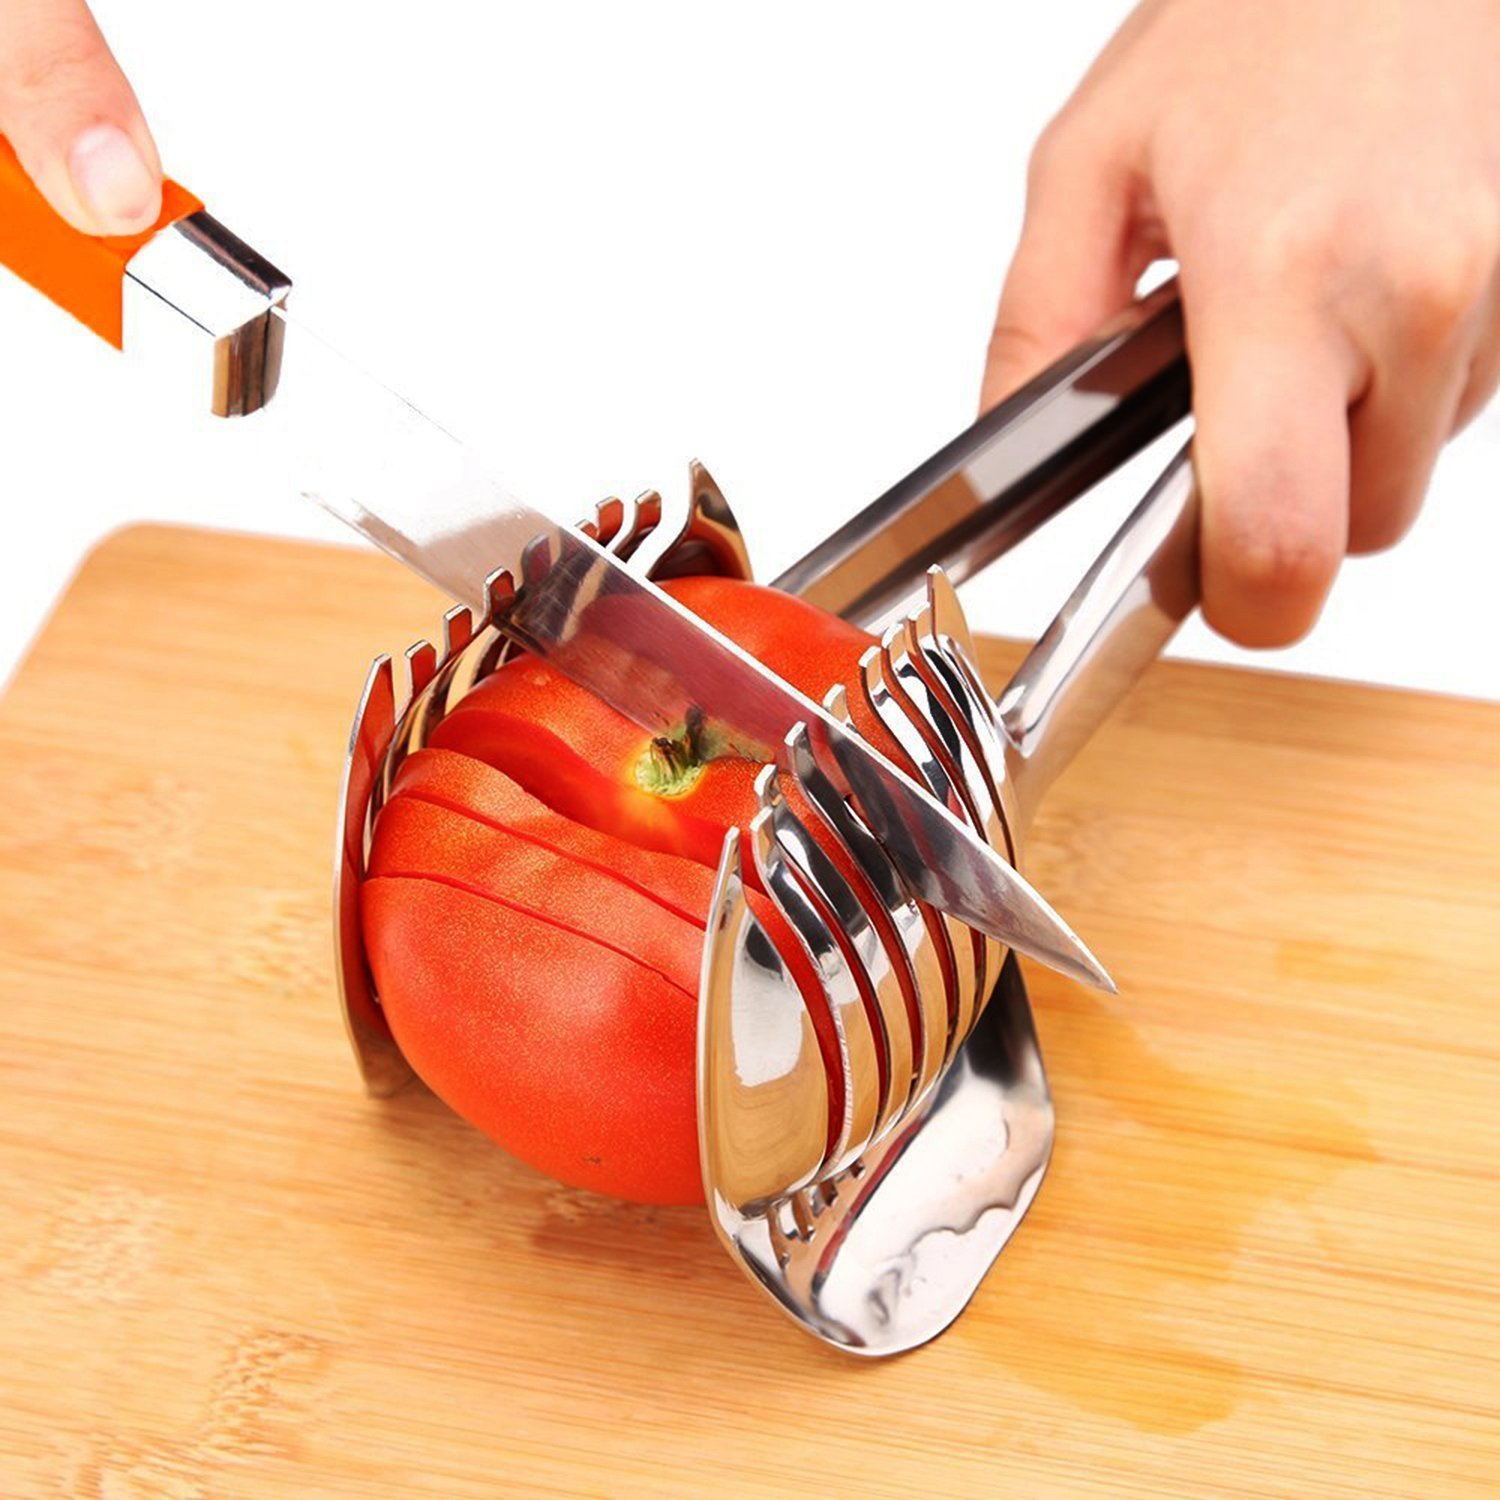 Tomato Slicer Lemon Cutter Stainless Steel Multipurpose Round Fruit Tongs Onion Holder Easy Slicing Kiwi Fruits & Vegetable Tools Kitchen Cutting Helper Clamp, Dishwasher Safe